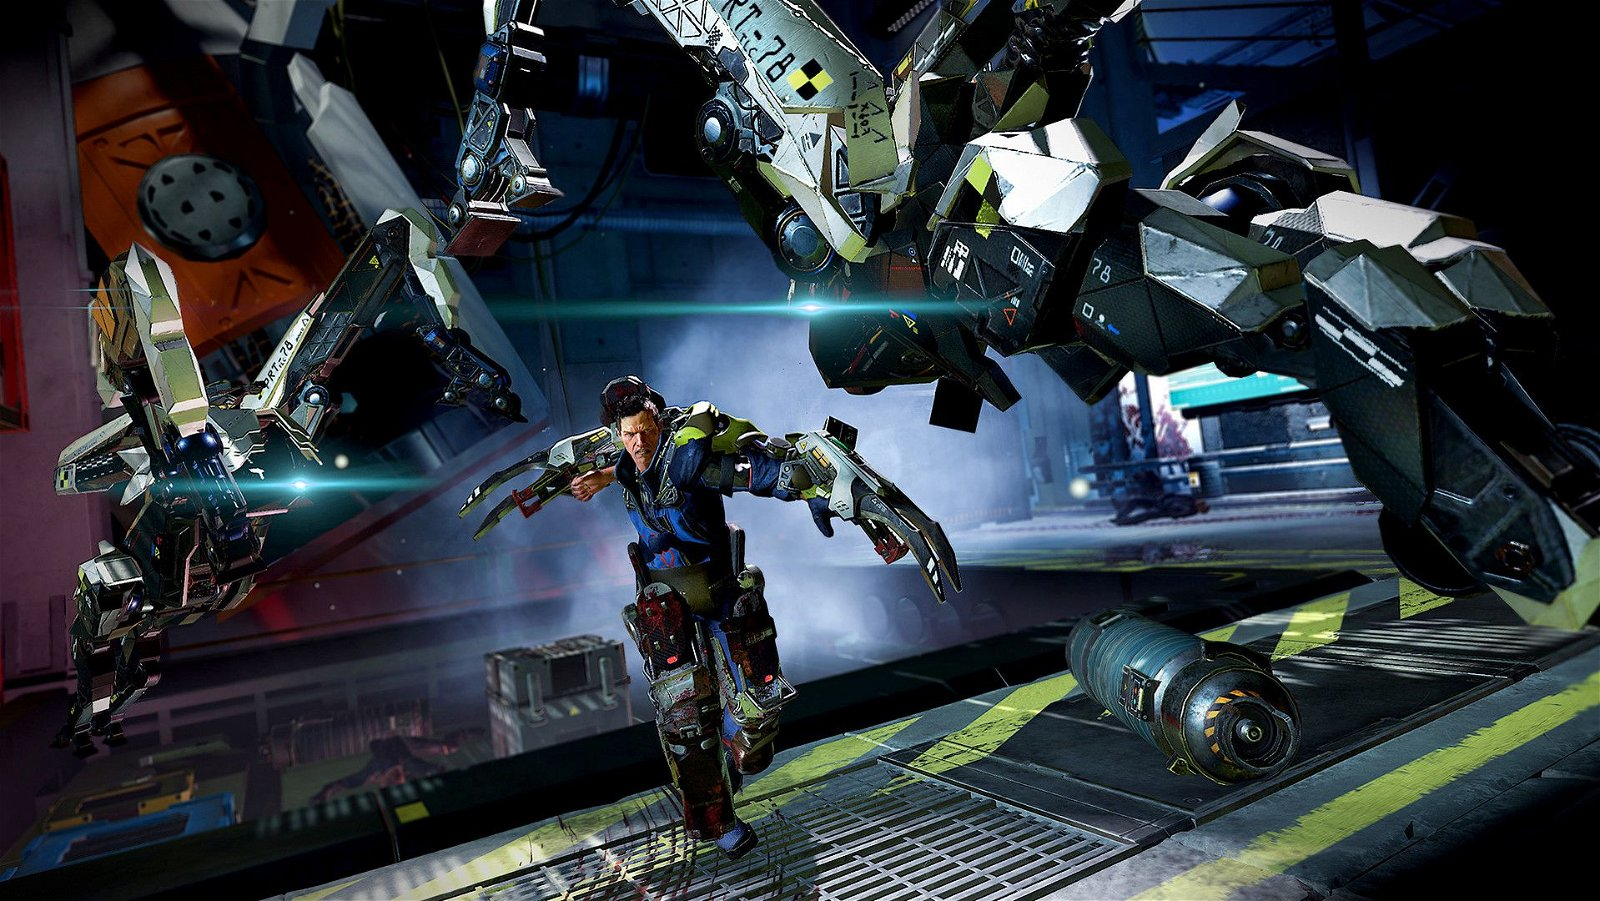 The Surge Review - Another Decent Souls-Like 2